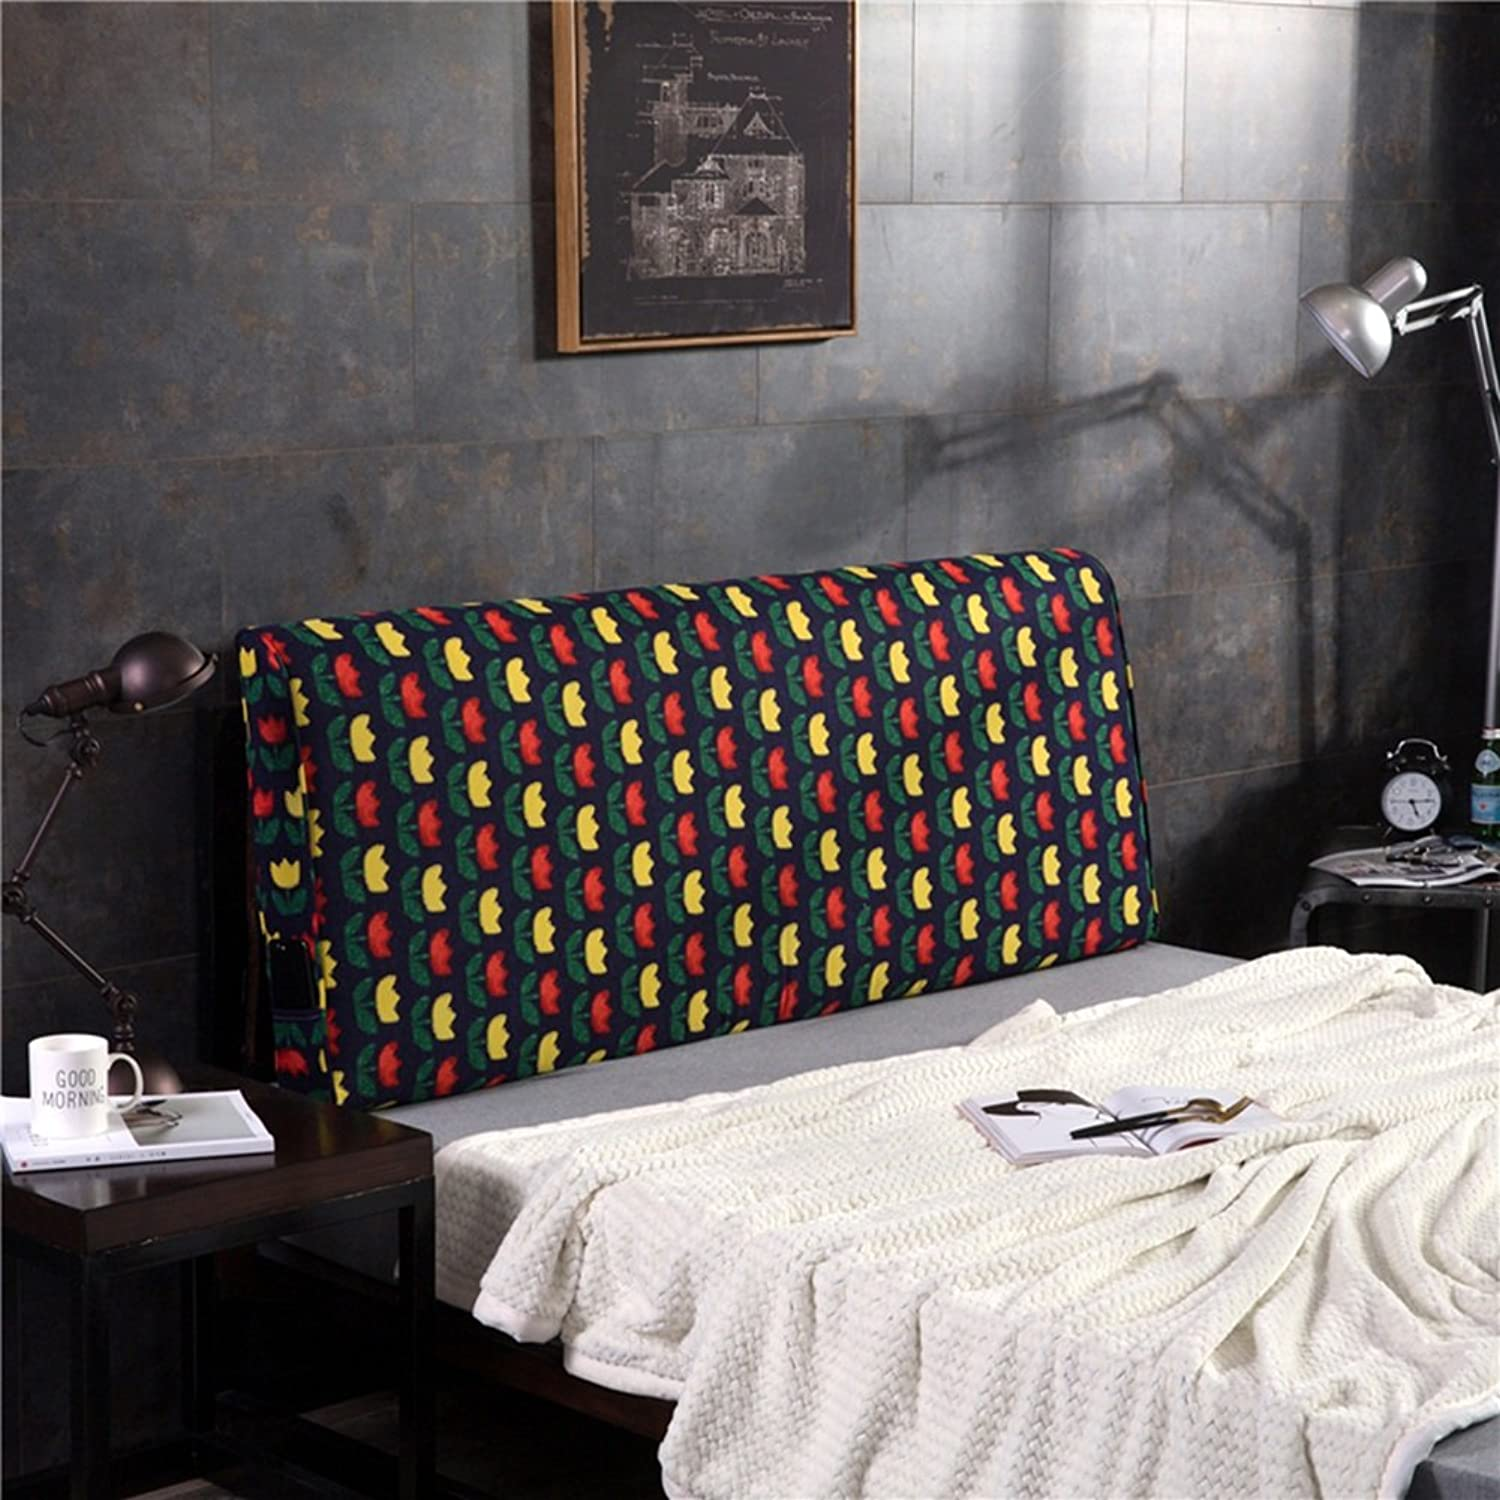 WENZHE Upholstered Fabric Headboard Bedside Cushion Pads Cover Bed Wedges Backrest Waist Pad Double Bed Large Back Multifunction Sofa Pillow Home Washable Thickened, With Headboard   No Headboard, 5 colors, 4 Sizes ( color   1  , Size   No headboard-150cm